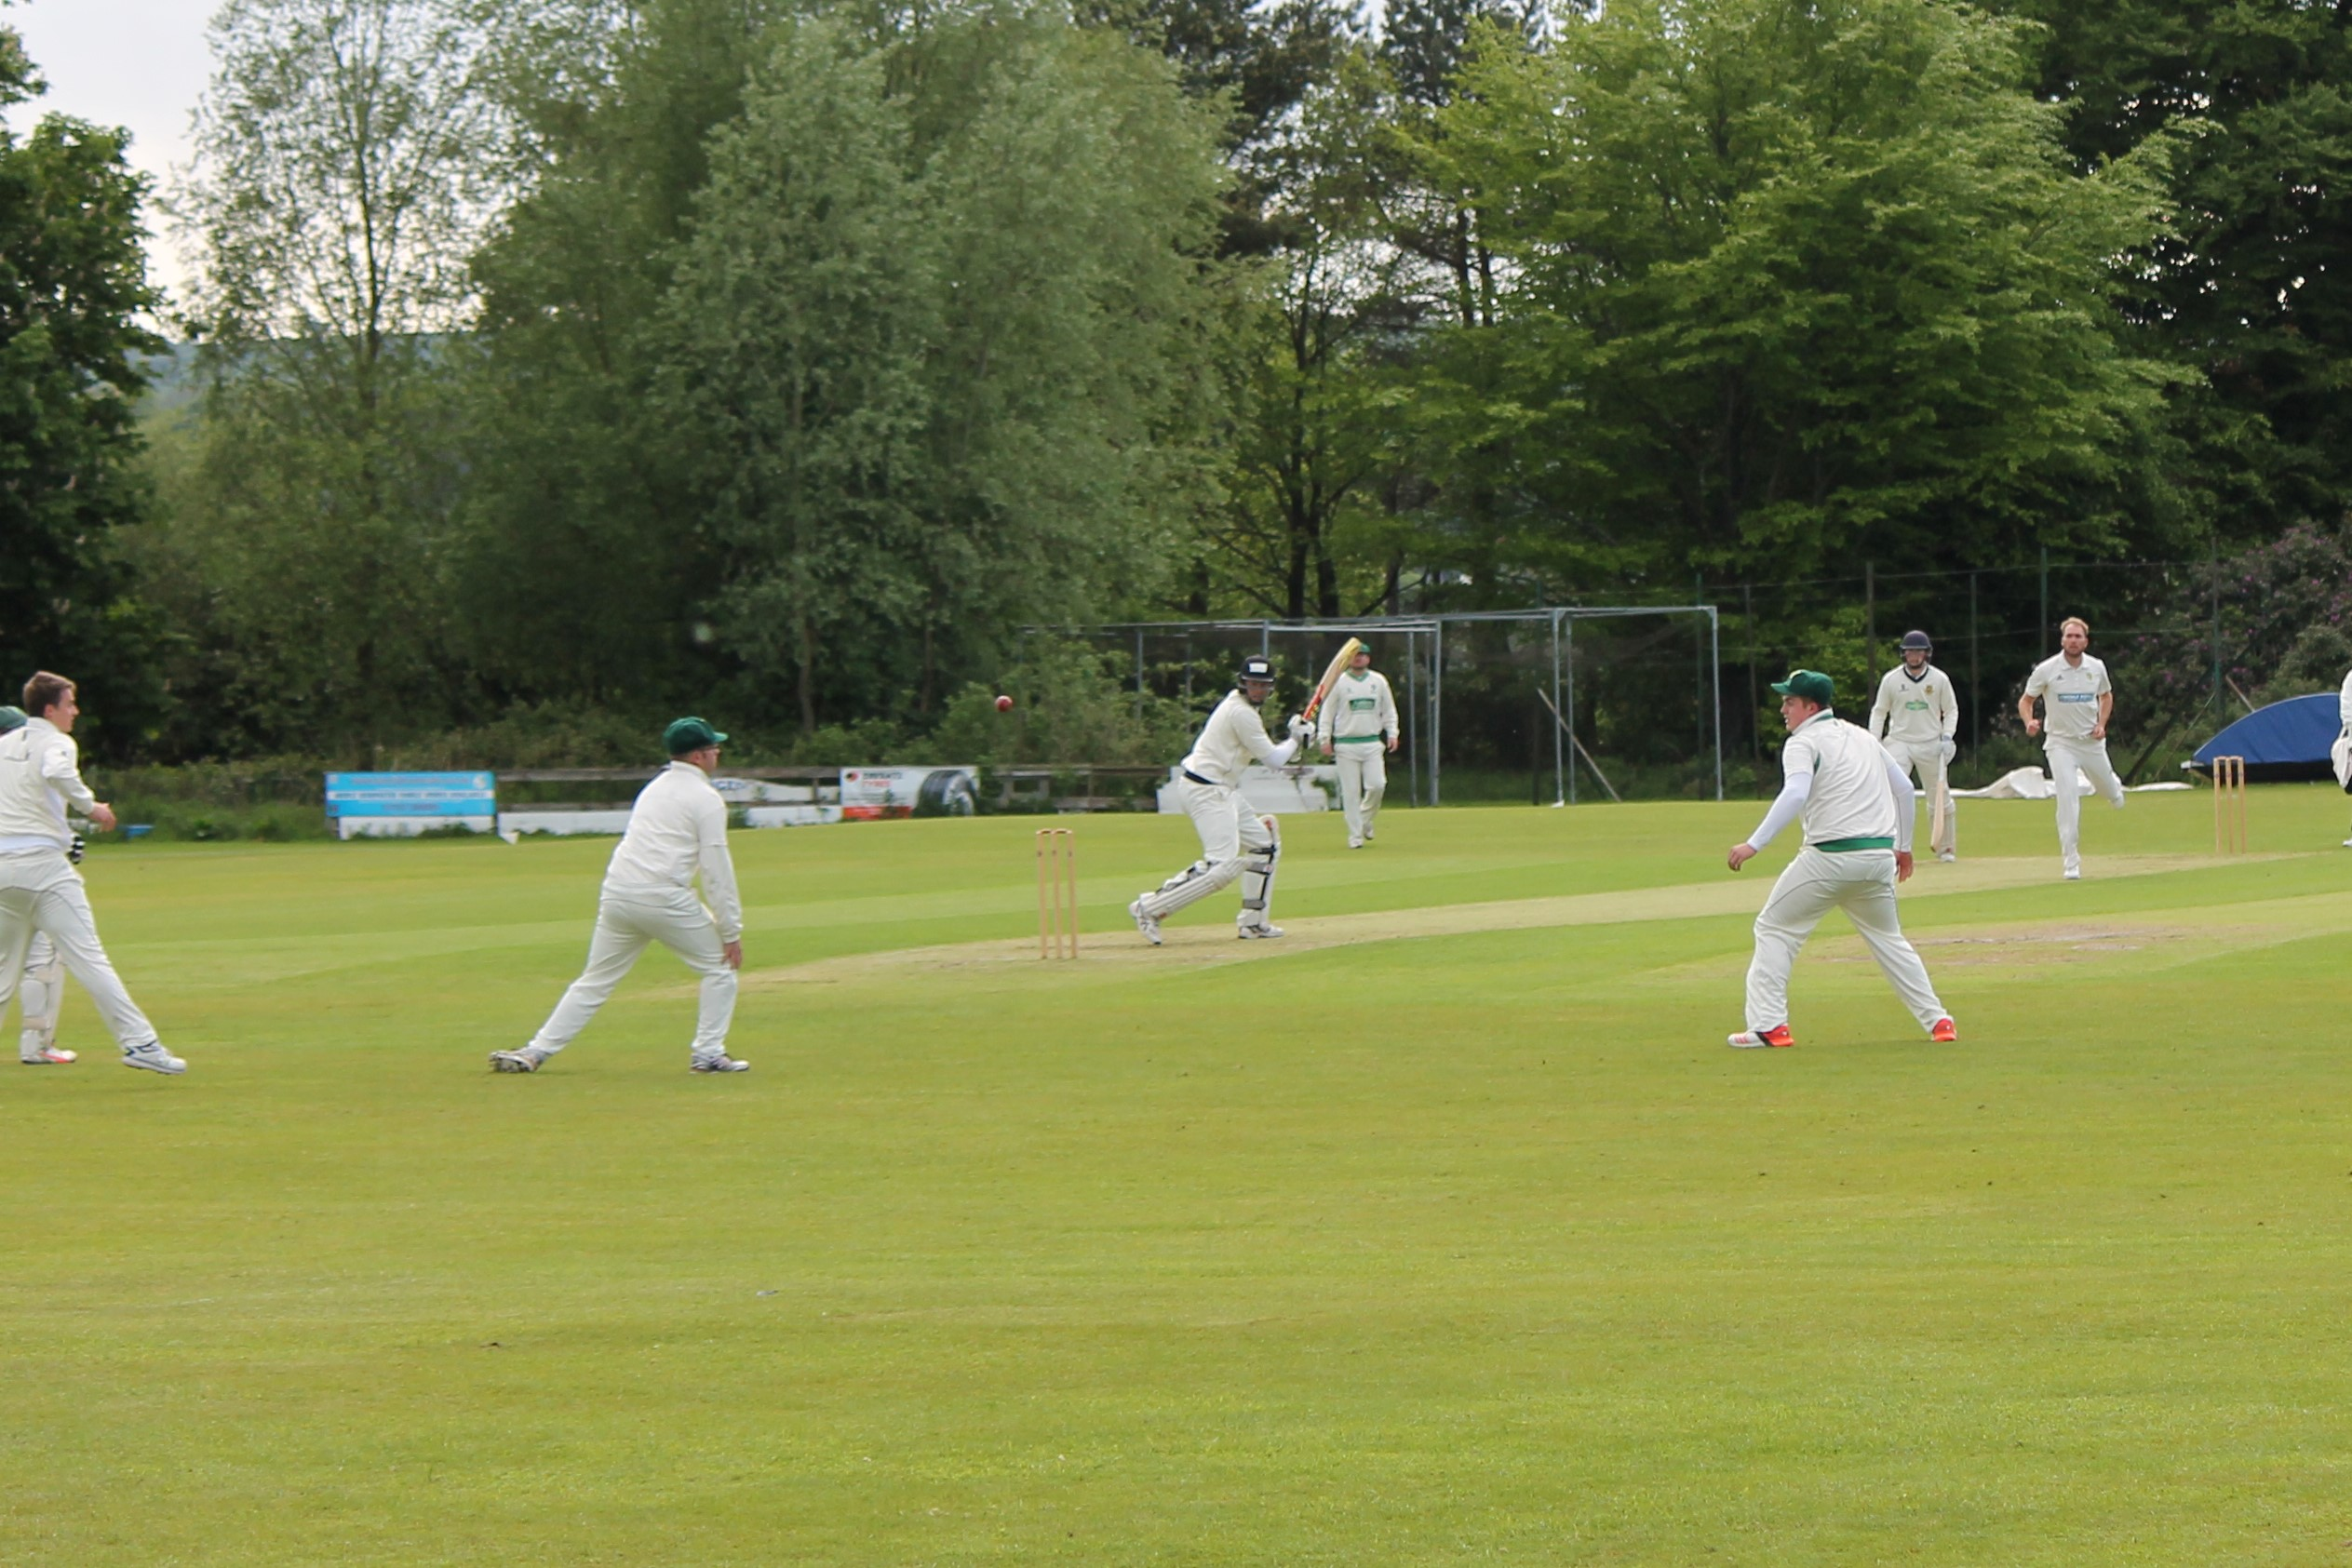 You know when it's not your day - Wayne White edges through the slips......